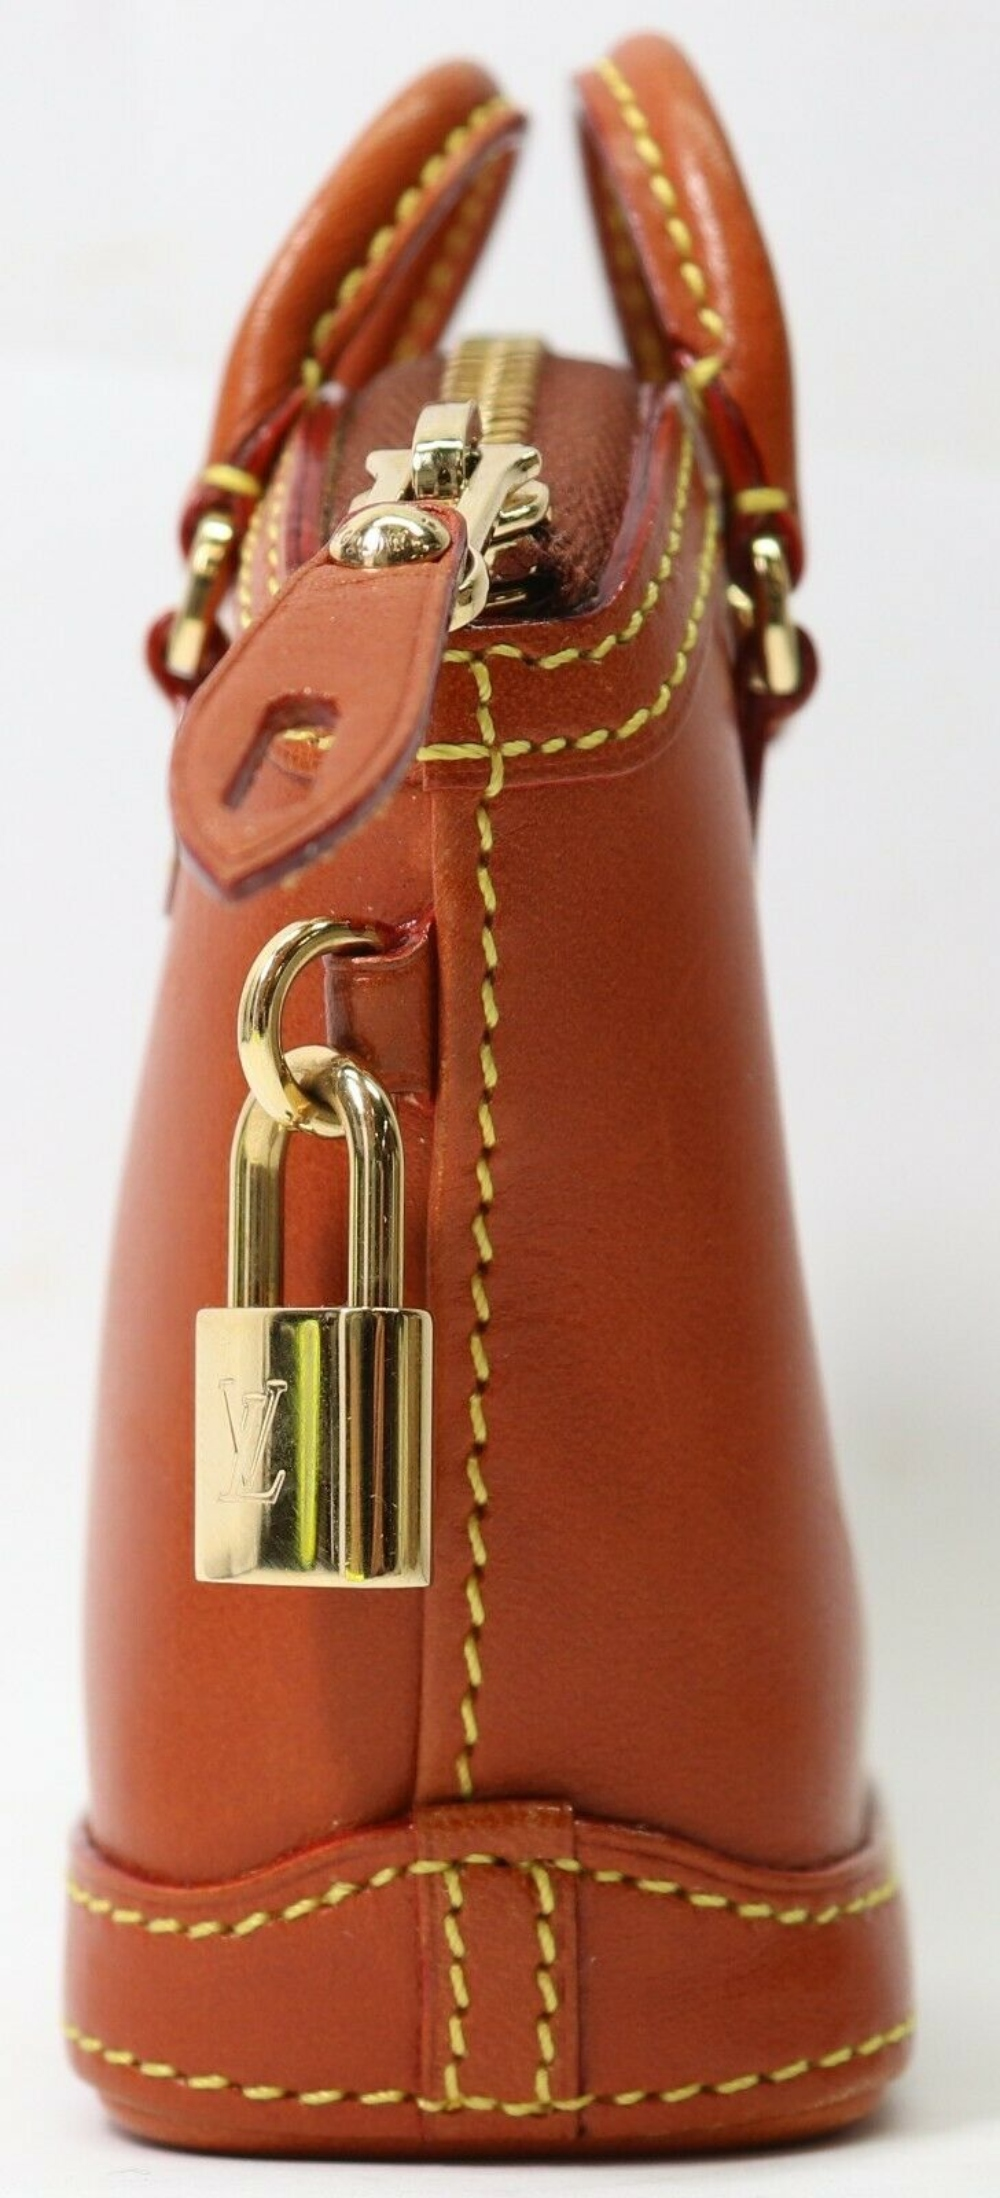 Lot 142: Louis Vuitton Mini Lockit Nomade Bag Leather brown Keychain Accessory Key Holder